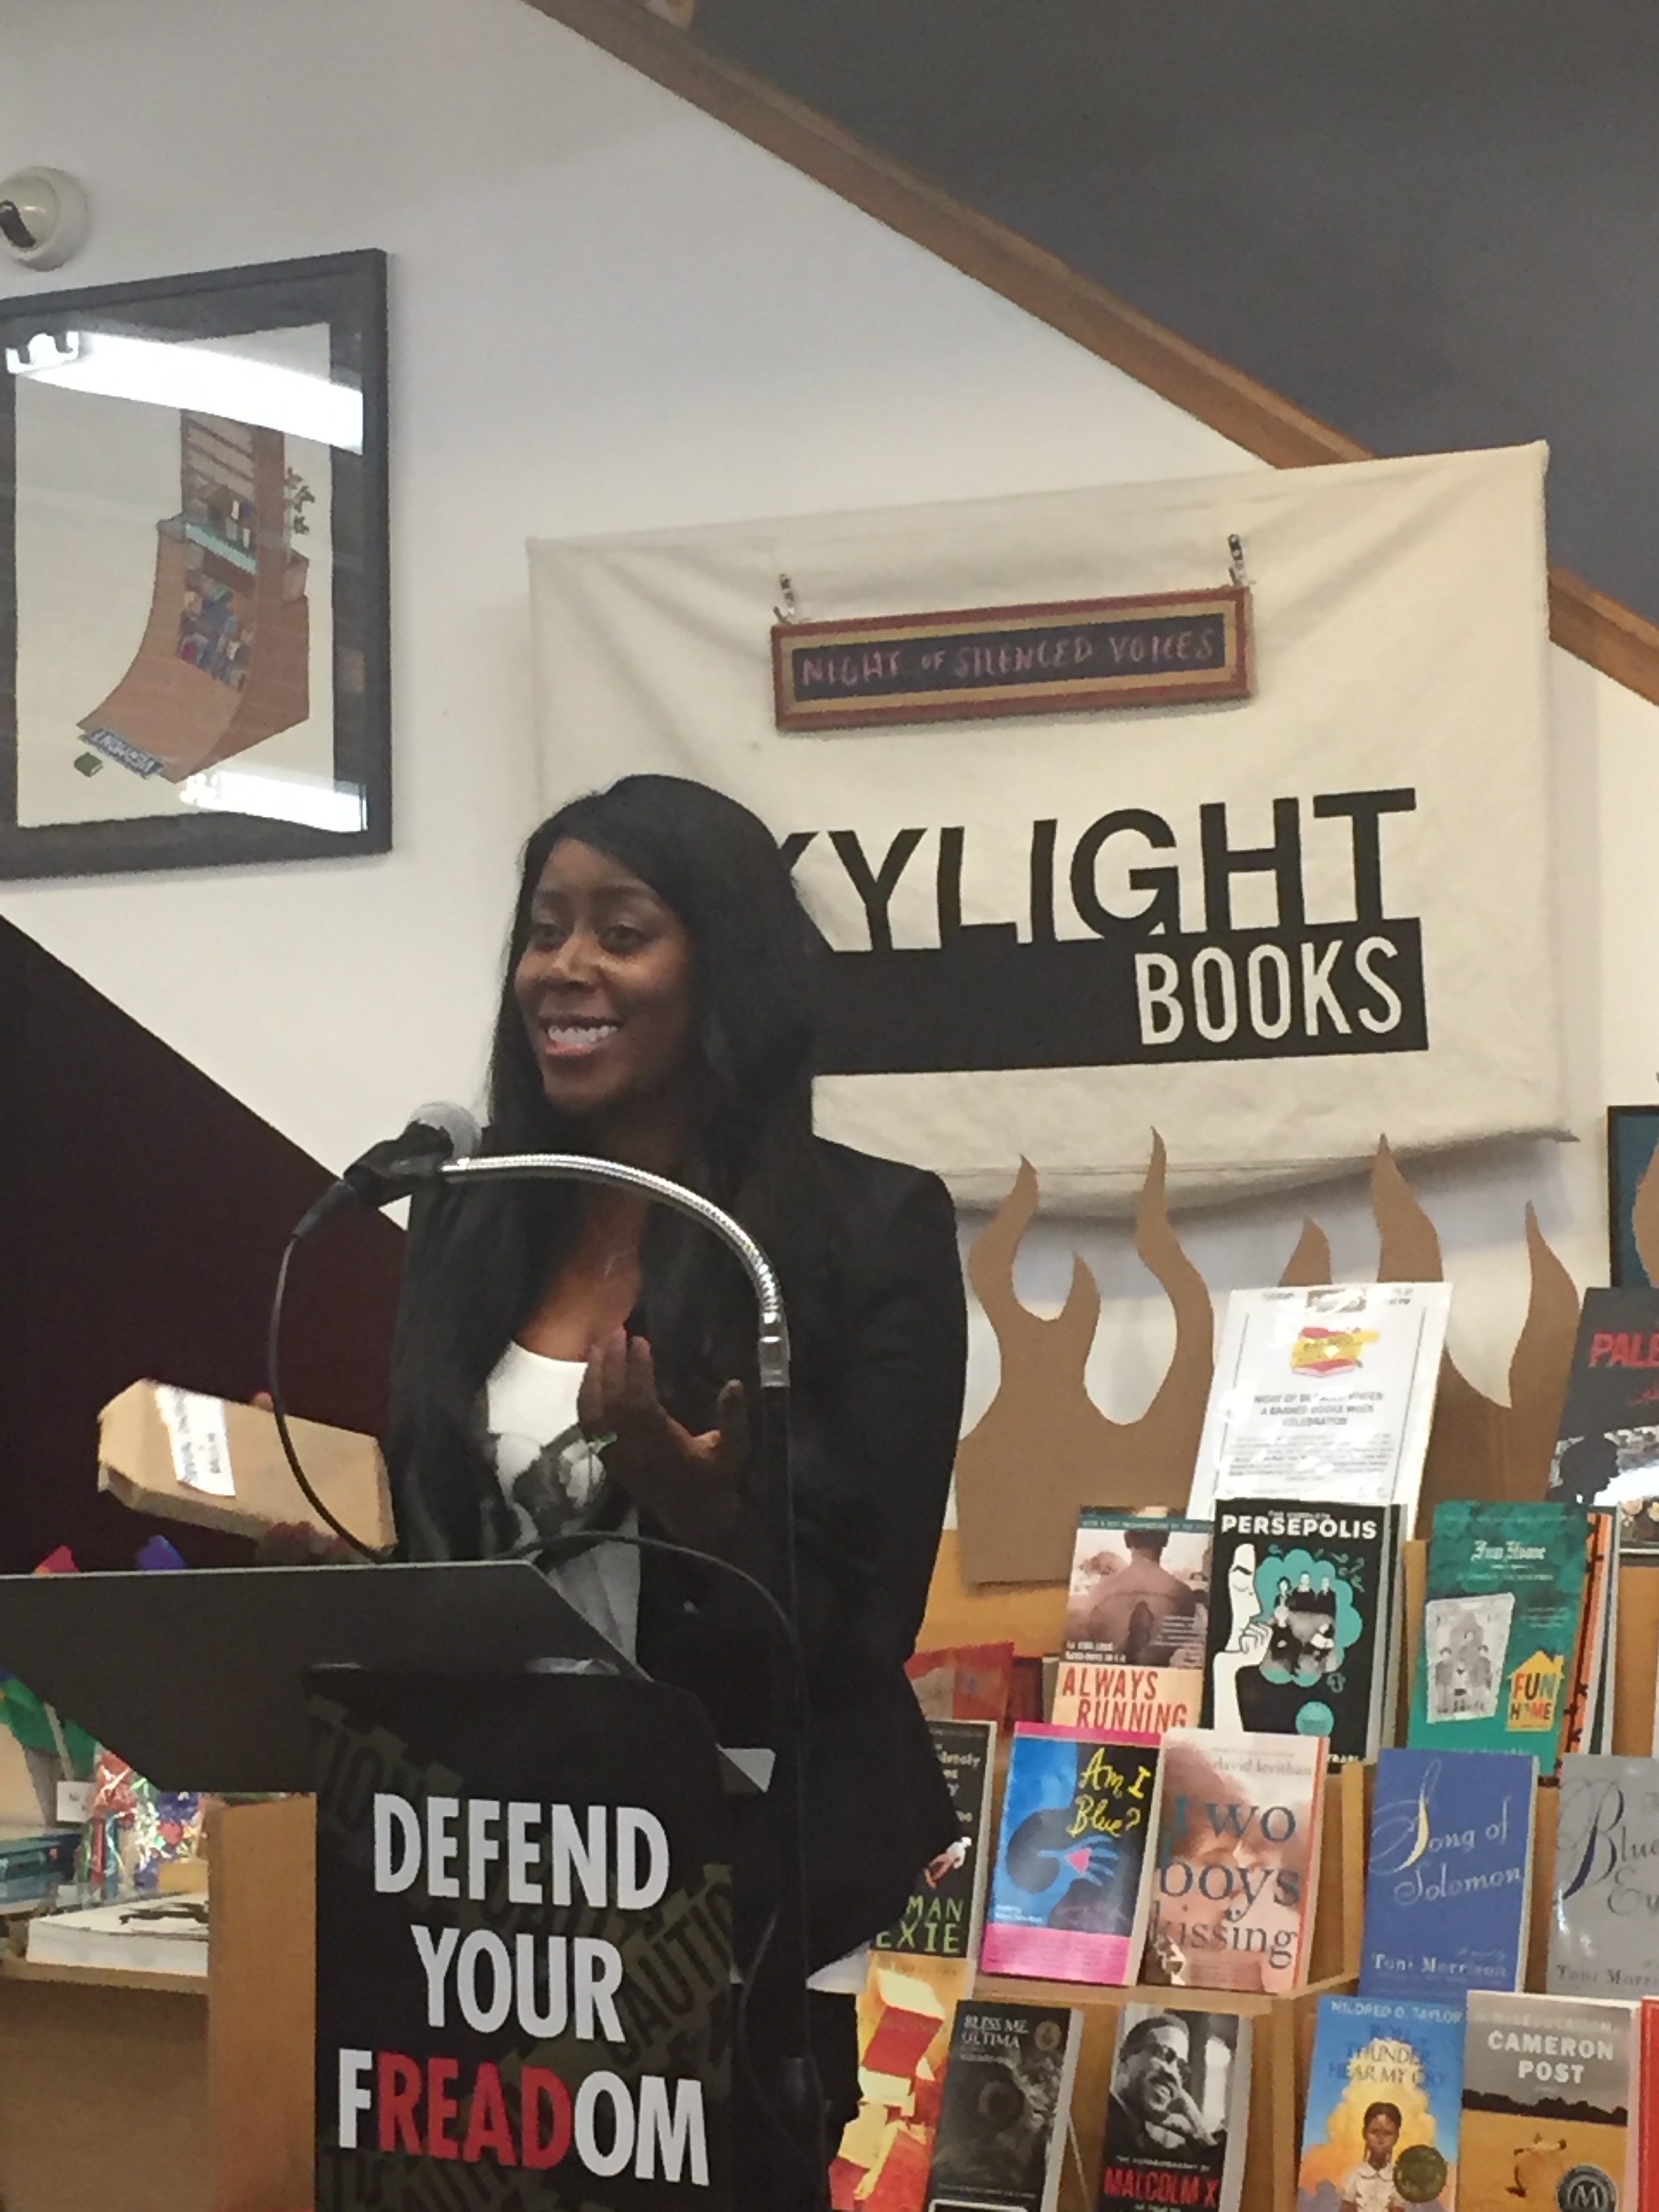 Author Natashia Deon reading at Skylight Books.